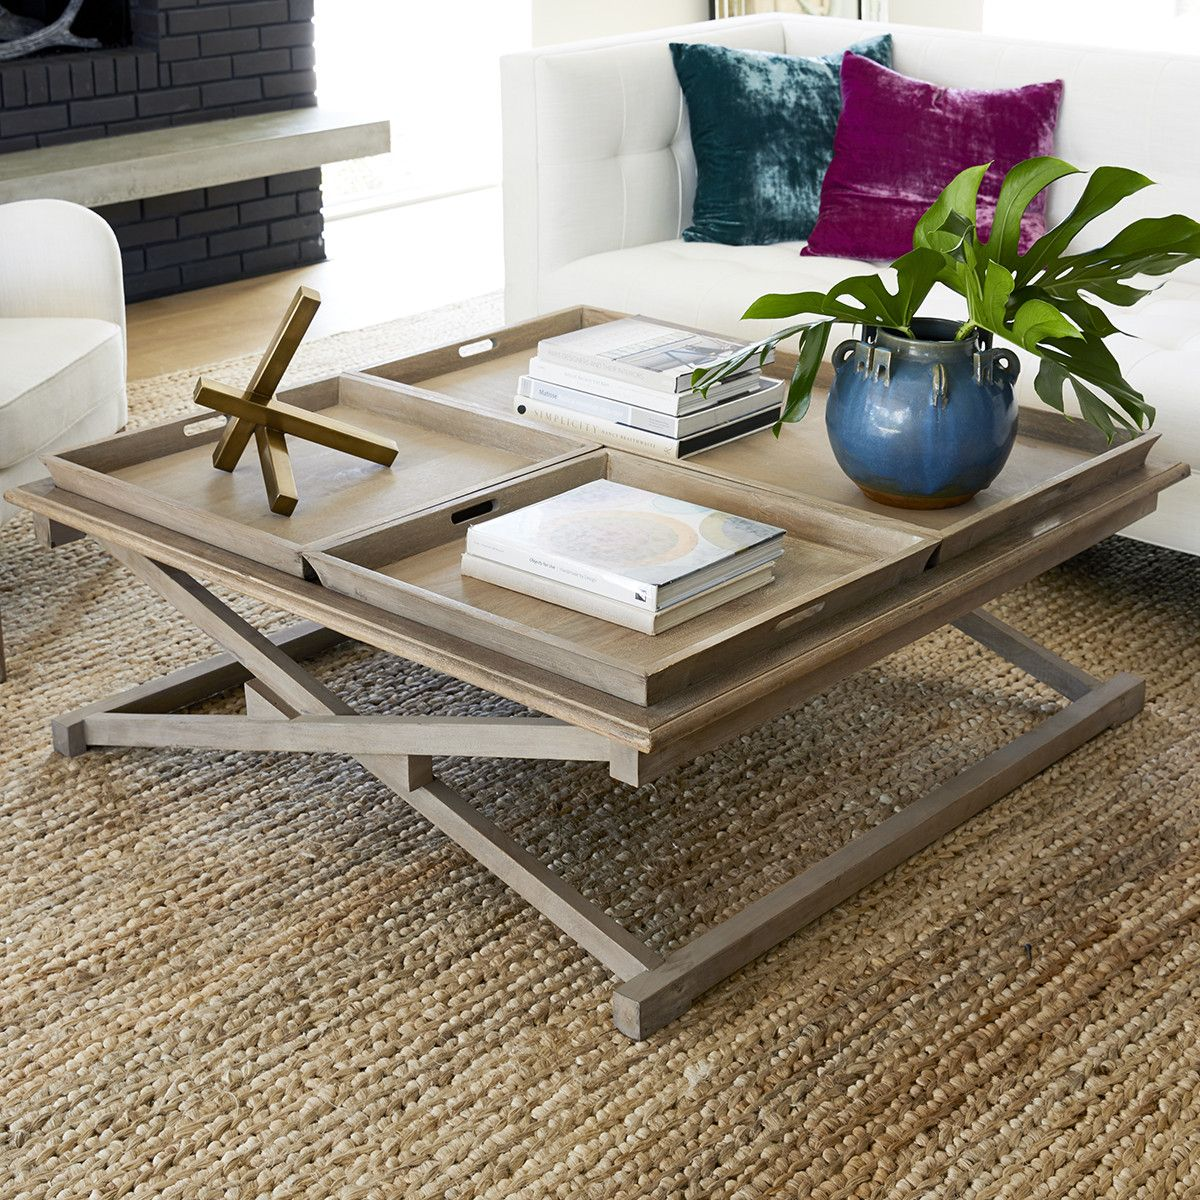 Large Coffee Table With Serving Trays In 2019